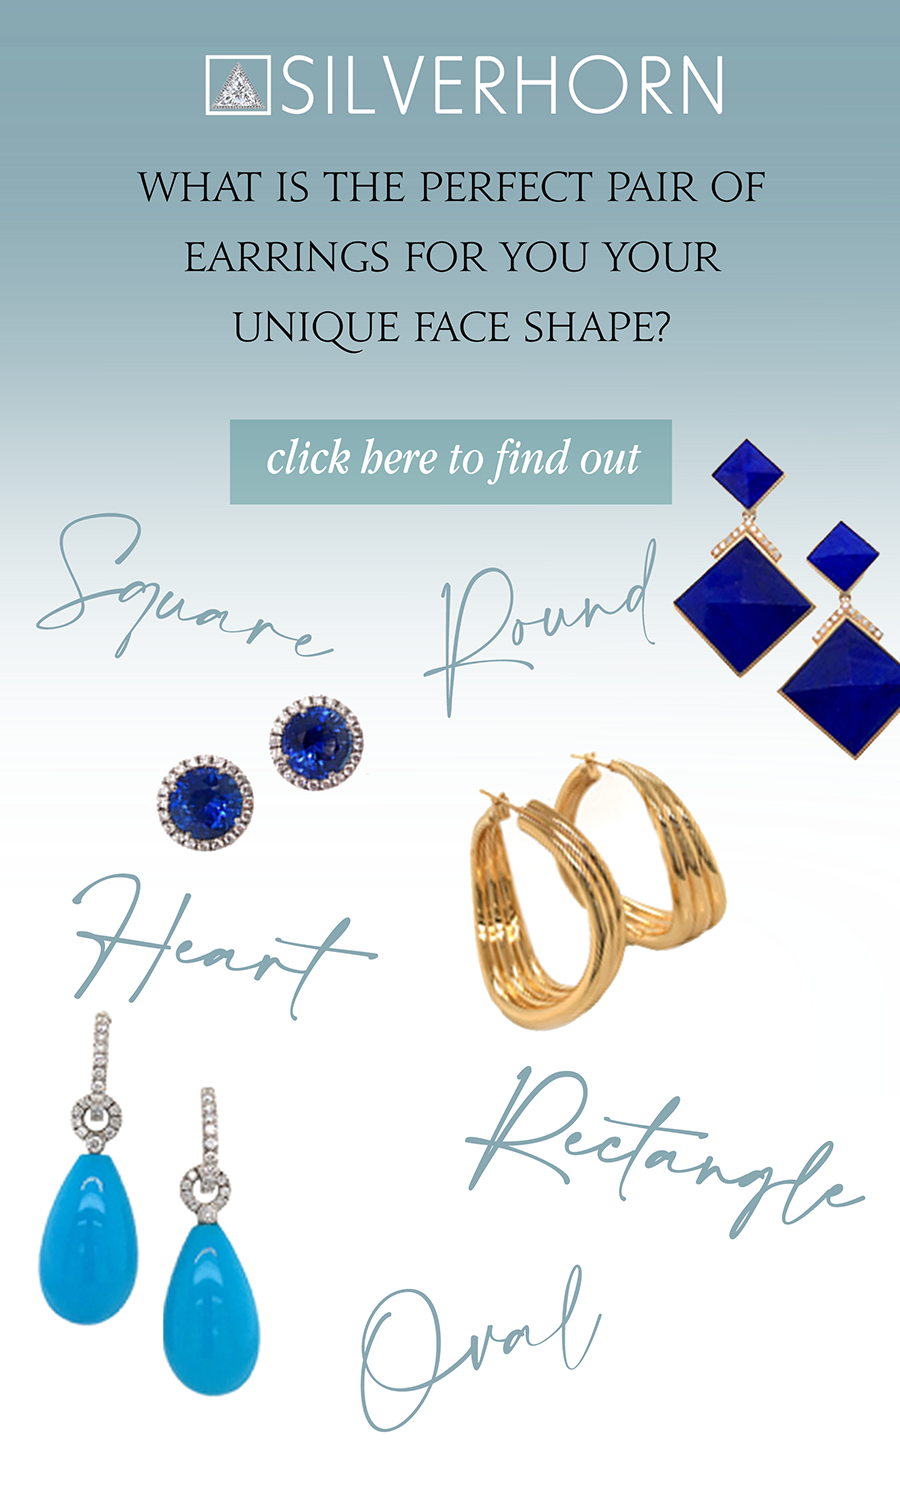 Silverhorn Jewelers the perfect jewelry for your unique face shape